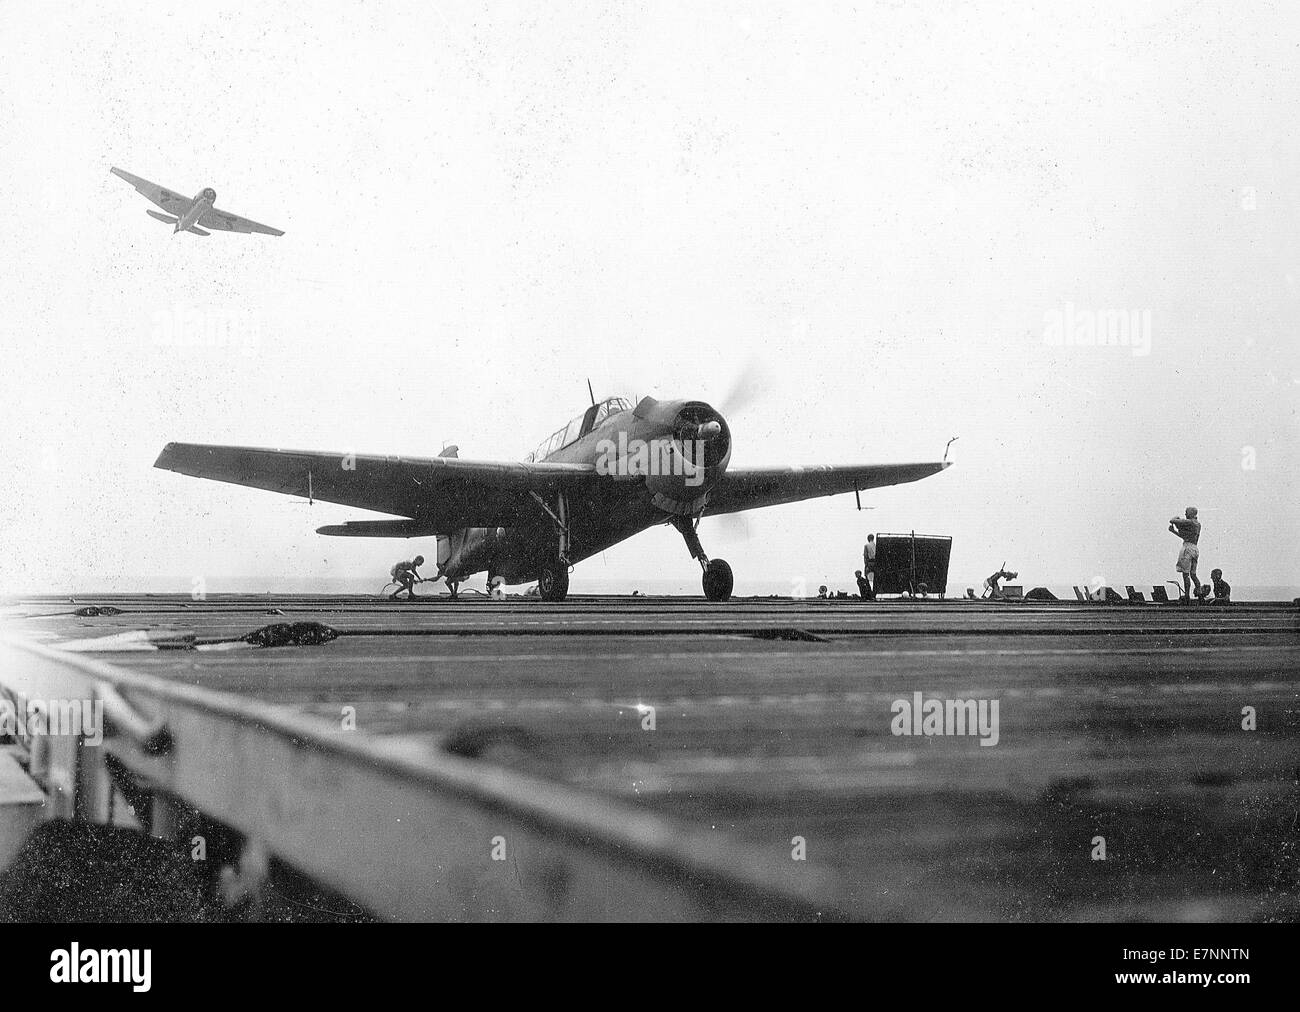 Royal Navy Grumman Avenger aircraft lands on the flight deck of a carrier during WW11 - Stock Image